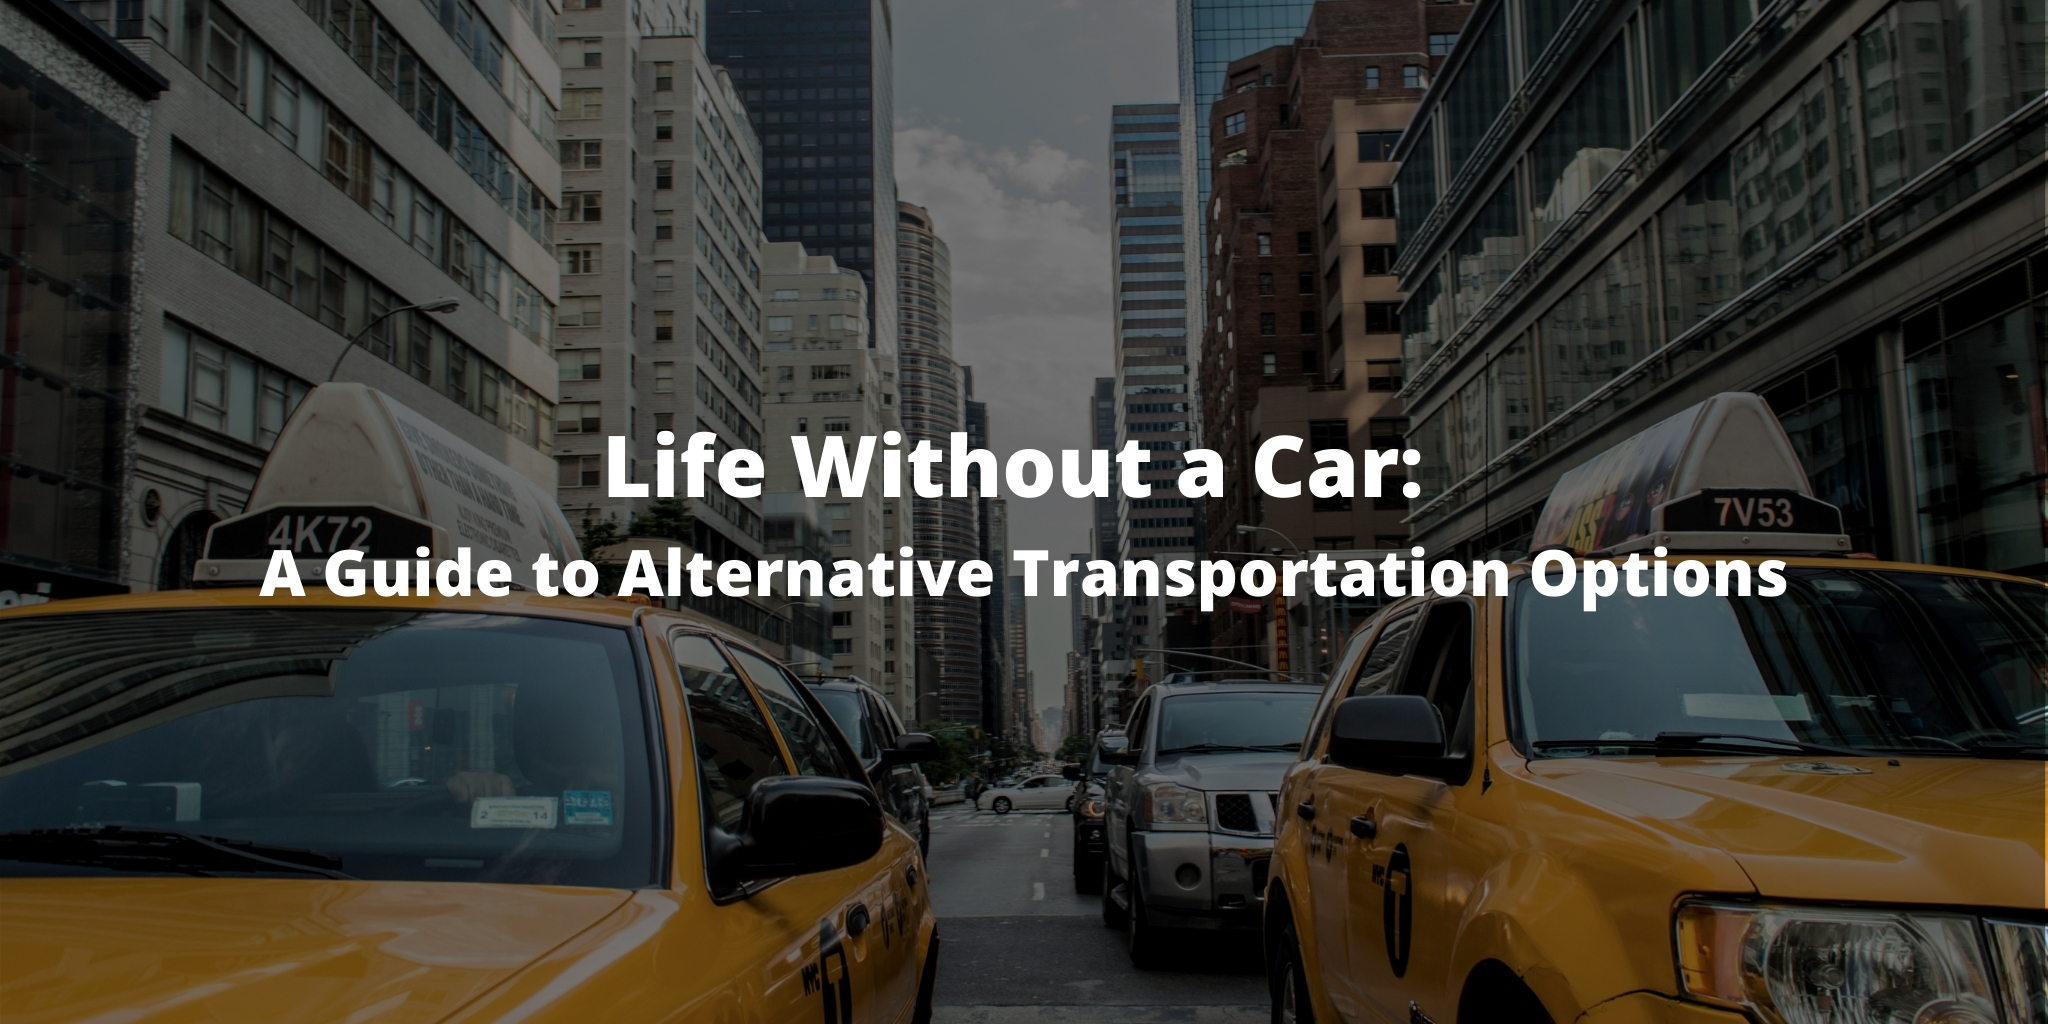 Life Without a Car: A Guide to Alternative Transportation Options